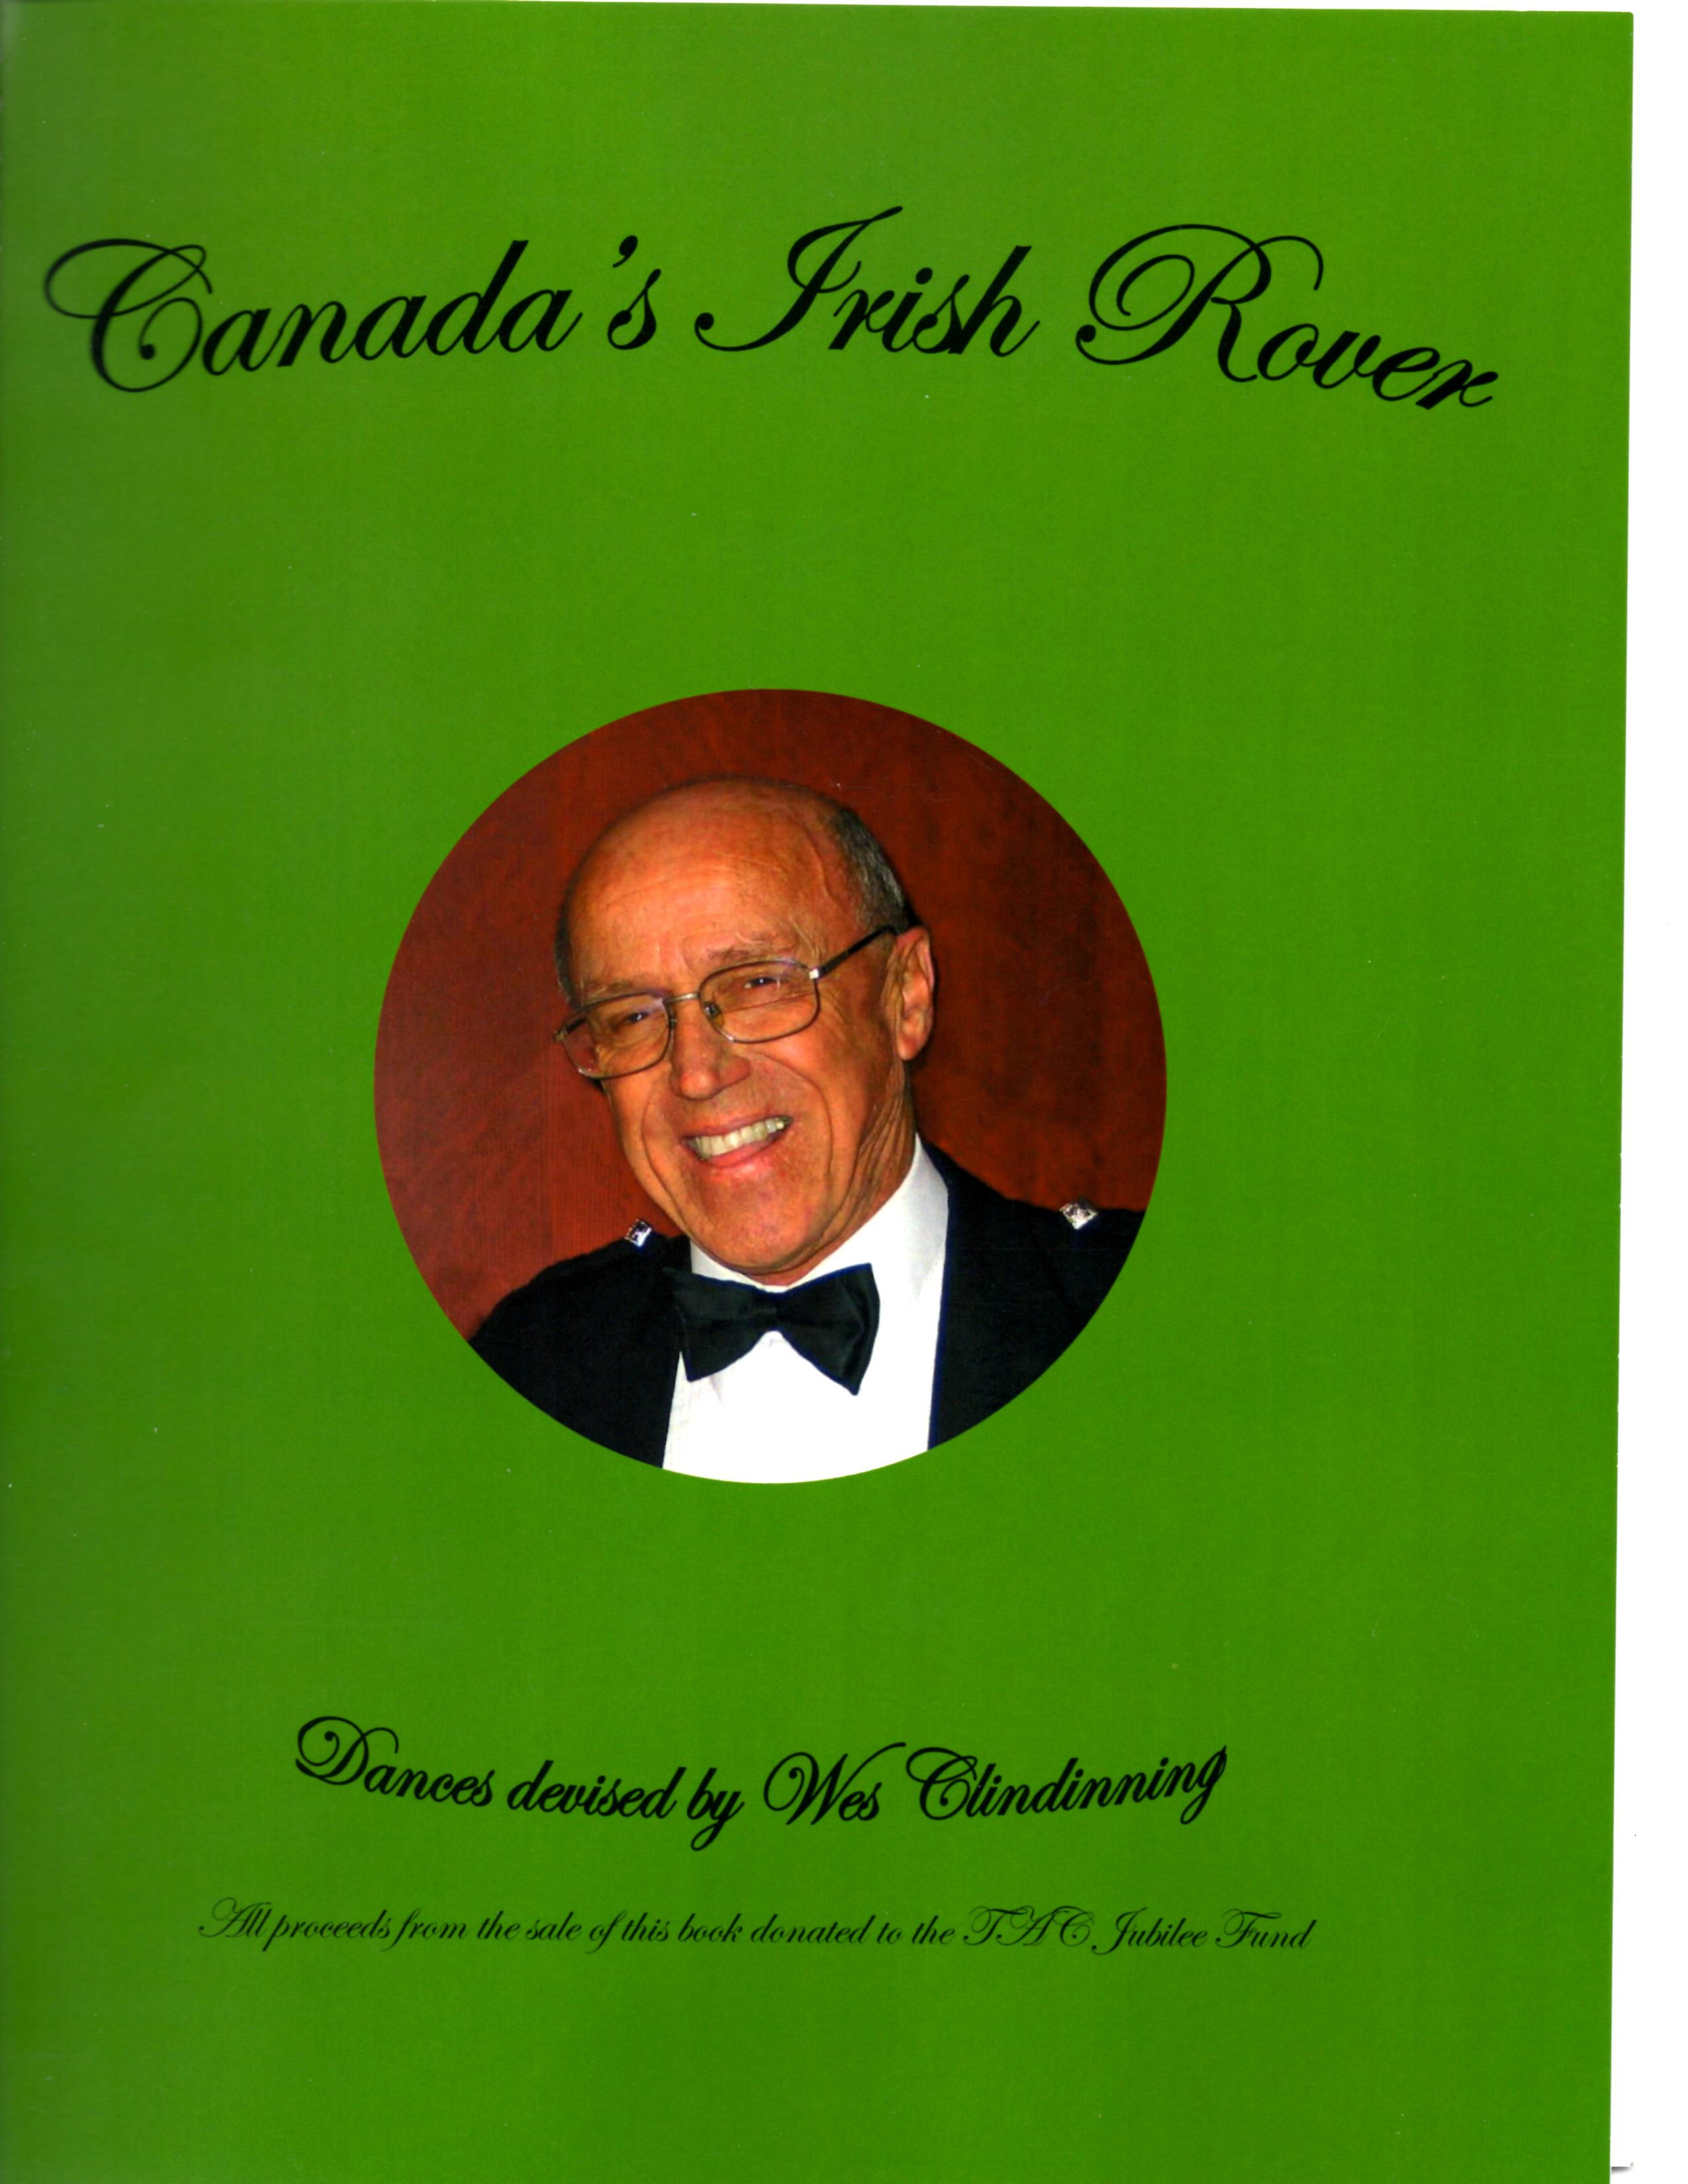 Canada's Irish Rover Dances by Wes Clindinning